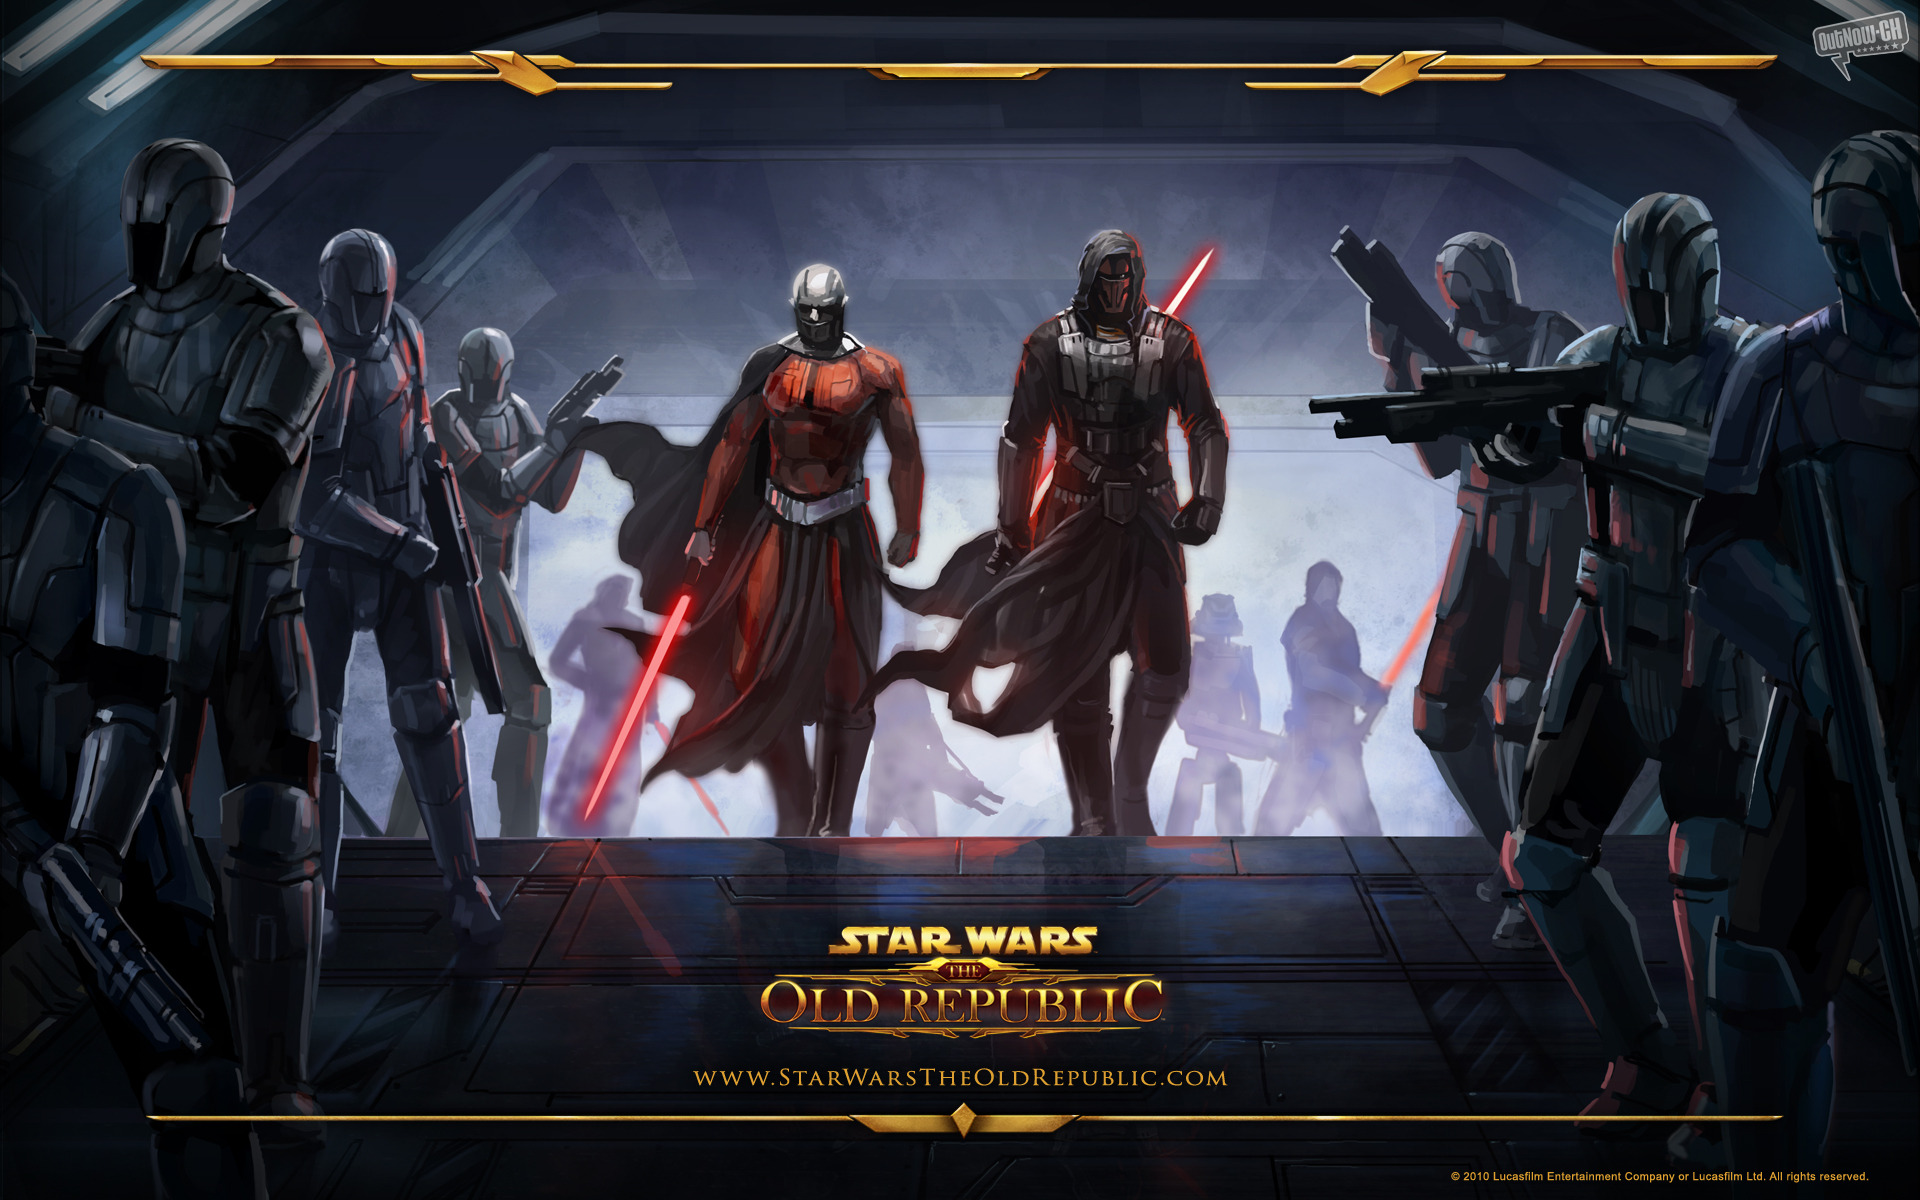 star wars%3A the old republic